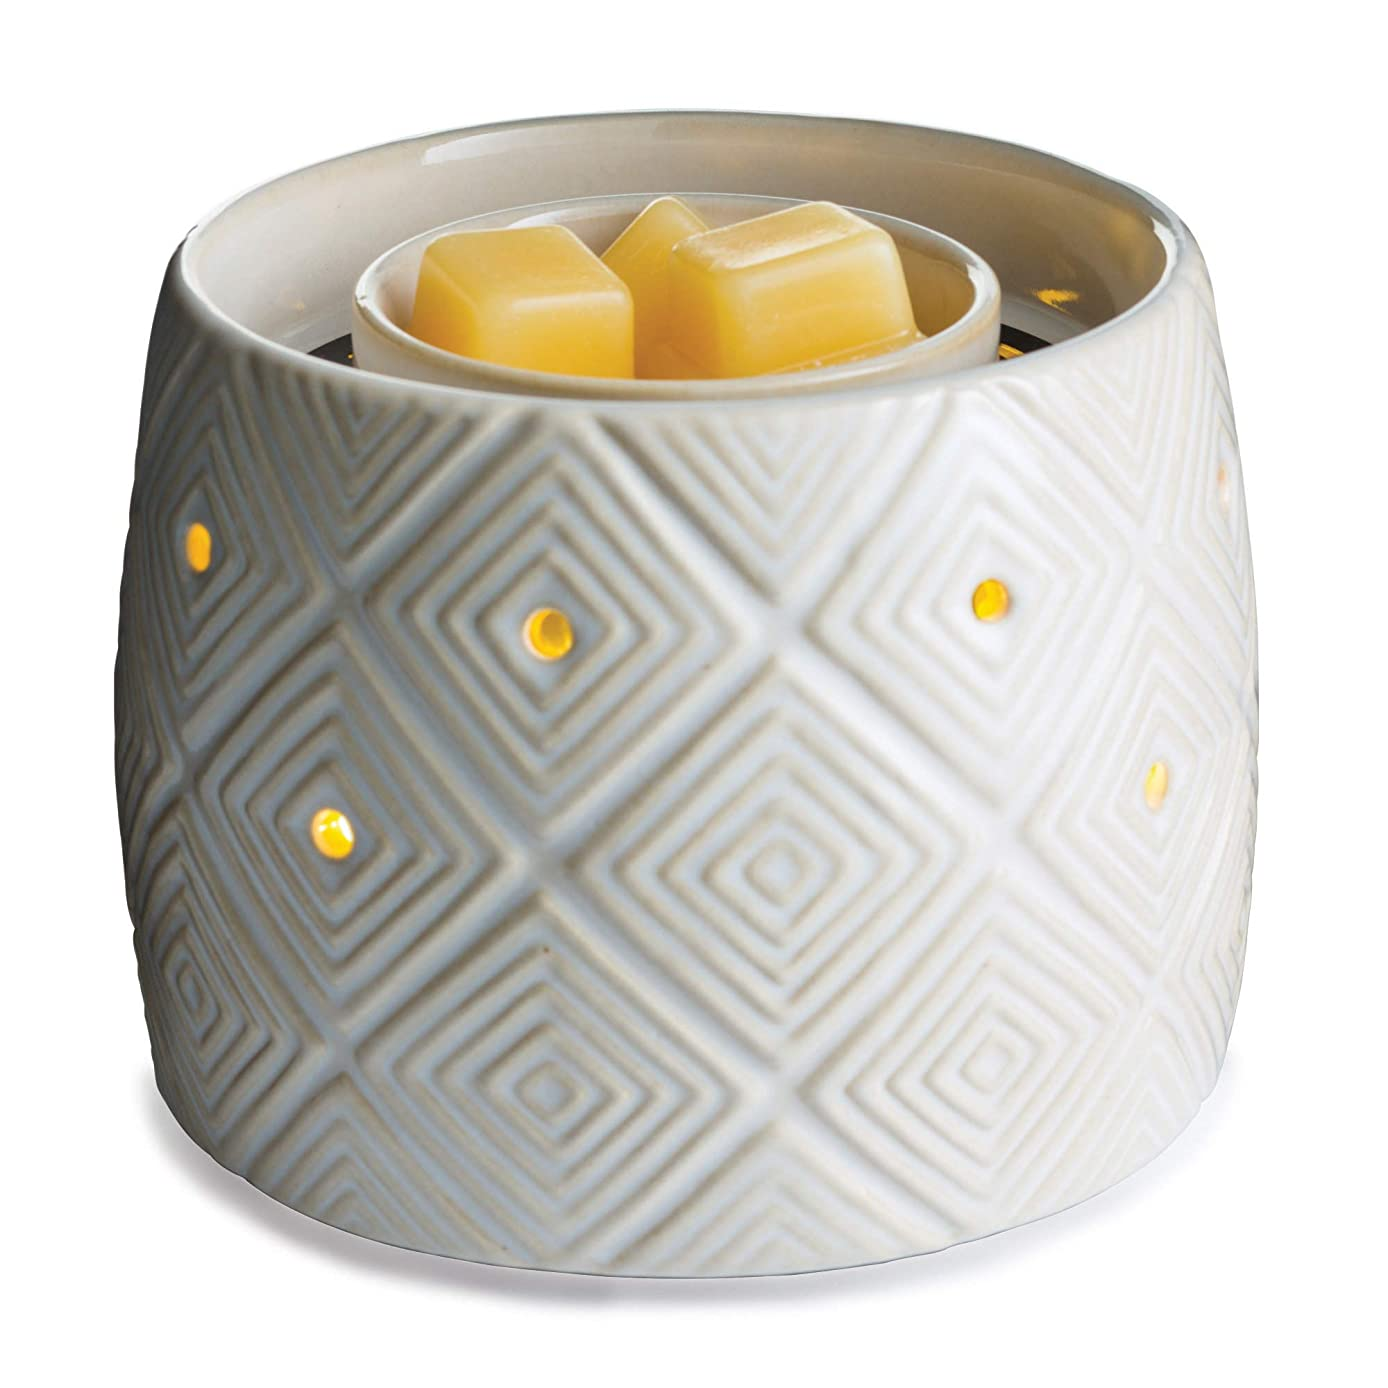 CANDLE WARMERS ETC. Illuminaire Fan Fragrance Warmer- Fan Circulates Scent from Scented Candle Wax Melts and Tarts for Full Room Freshener, Geometric